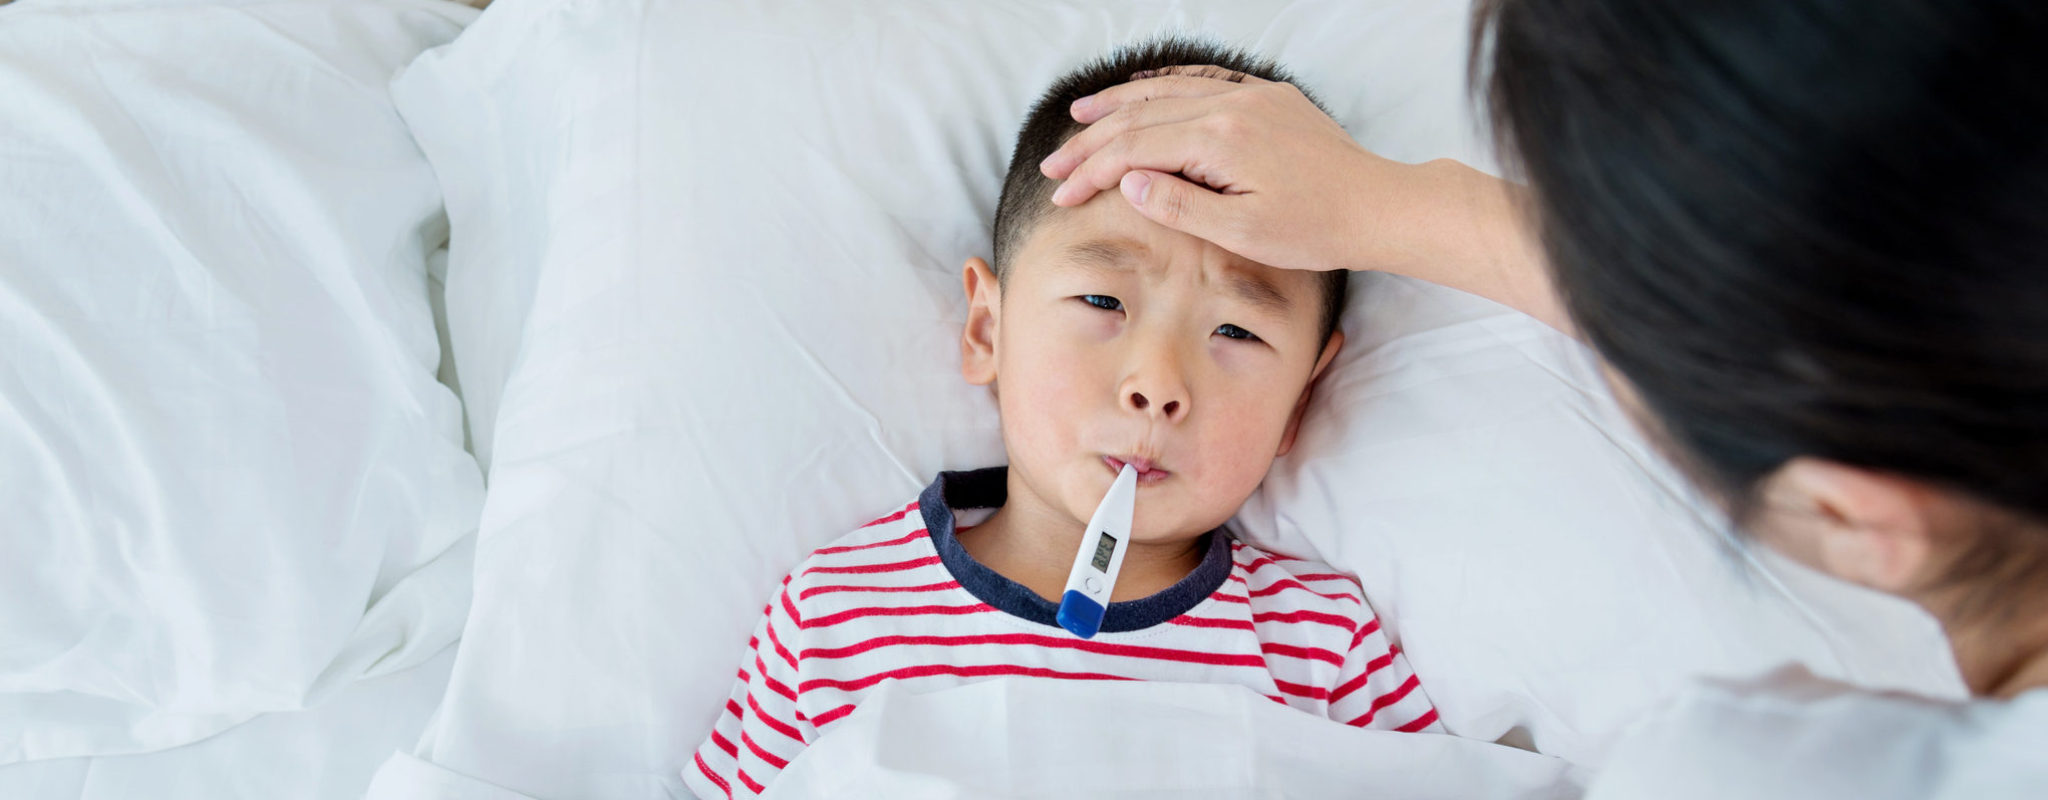 6 Common Pneumonia Questions Answered, by Kate Cronan, MD, Powered by Nemours Children's Health System